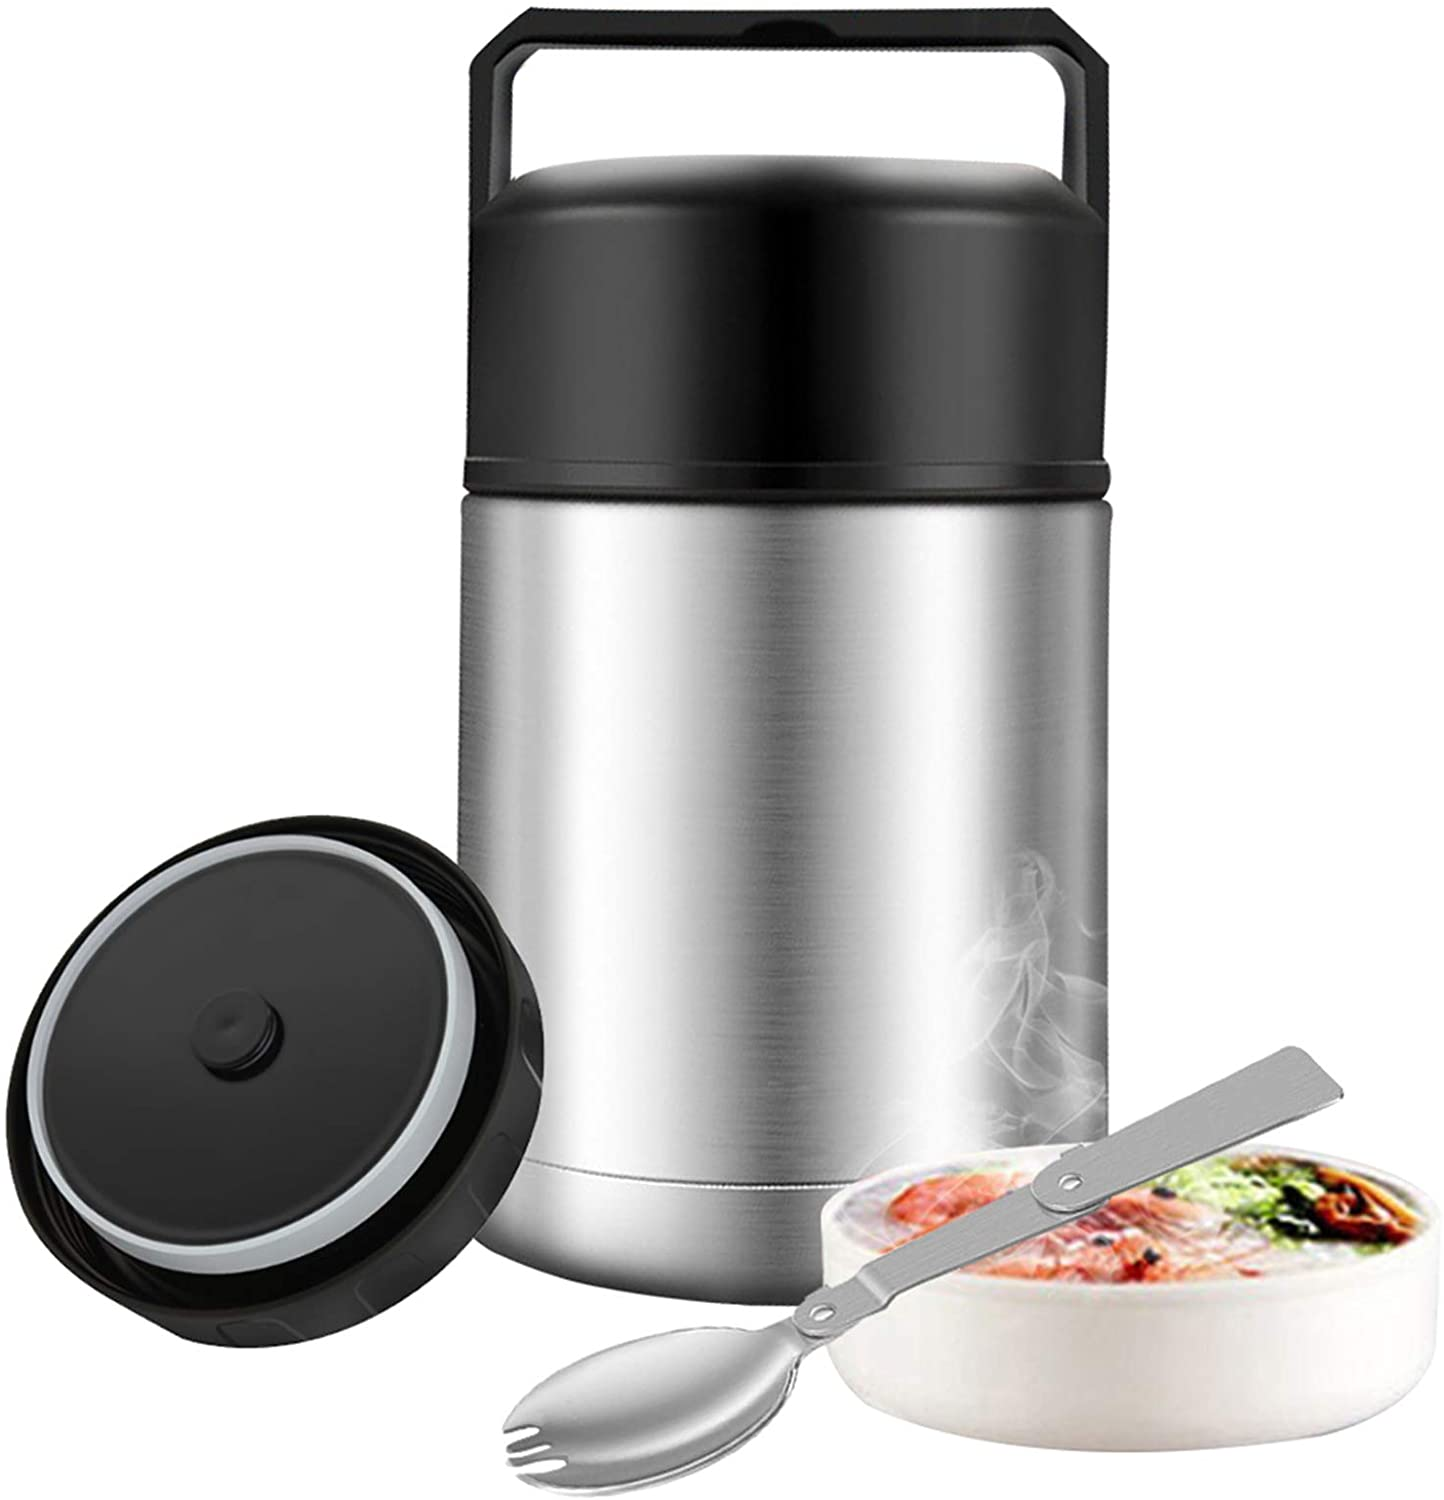 Food Oklahoma City Mall Thermos 27oz Wide Mouth Department store Hot Soup with Fold for